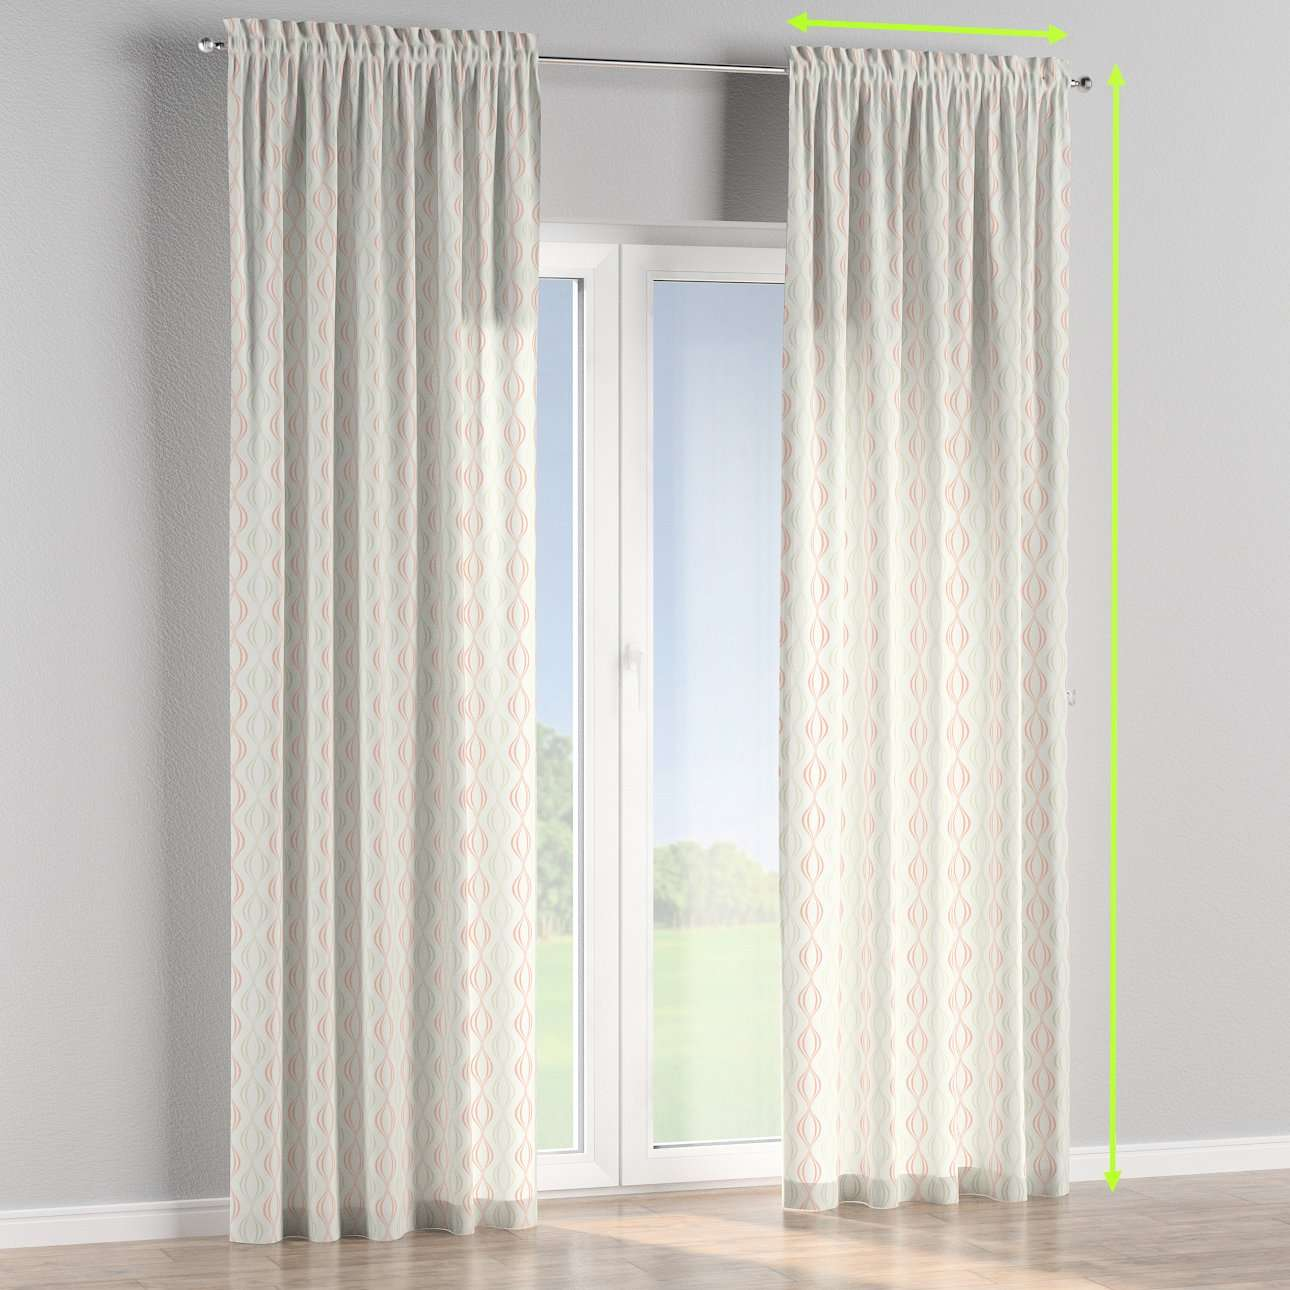 Slot and frill lined curtains in collection Geometric, fabric: 141-49